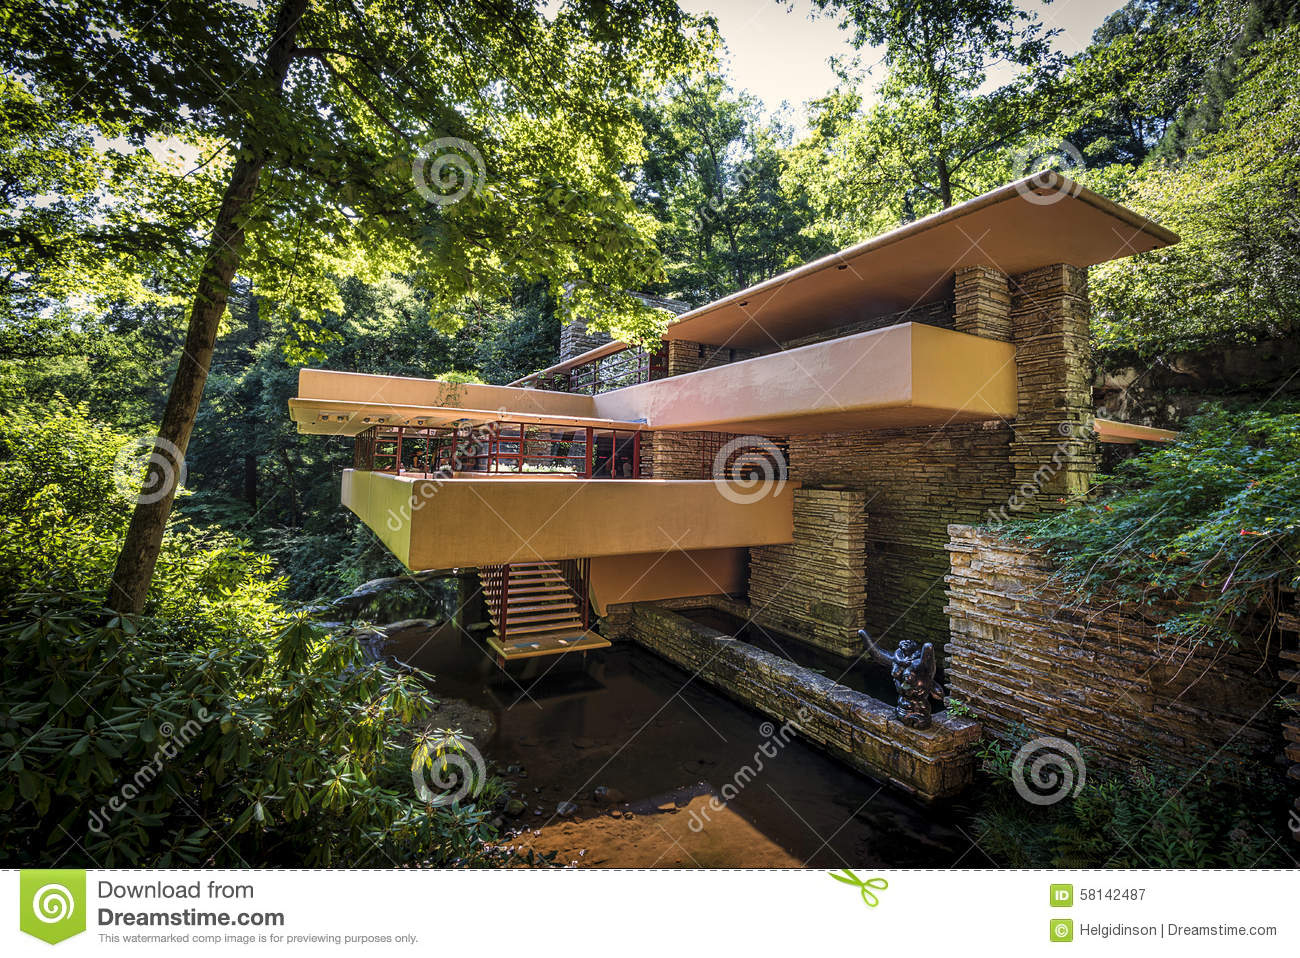 Upperstclair also Cabin And House Plans By Estemerwalt furthermore 2143 Wolford St Pittsburgh PA 15226 M33115 77004 likewise Projects Green Pnc Mcmurray together with 7 Psychiatric Hospitals That Are No Longer Open. on allegheny house plan